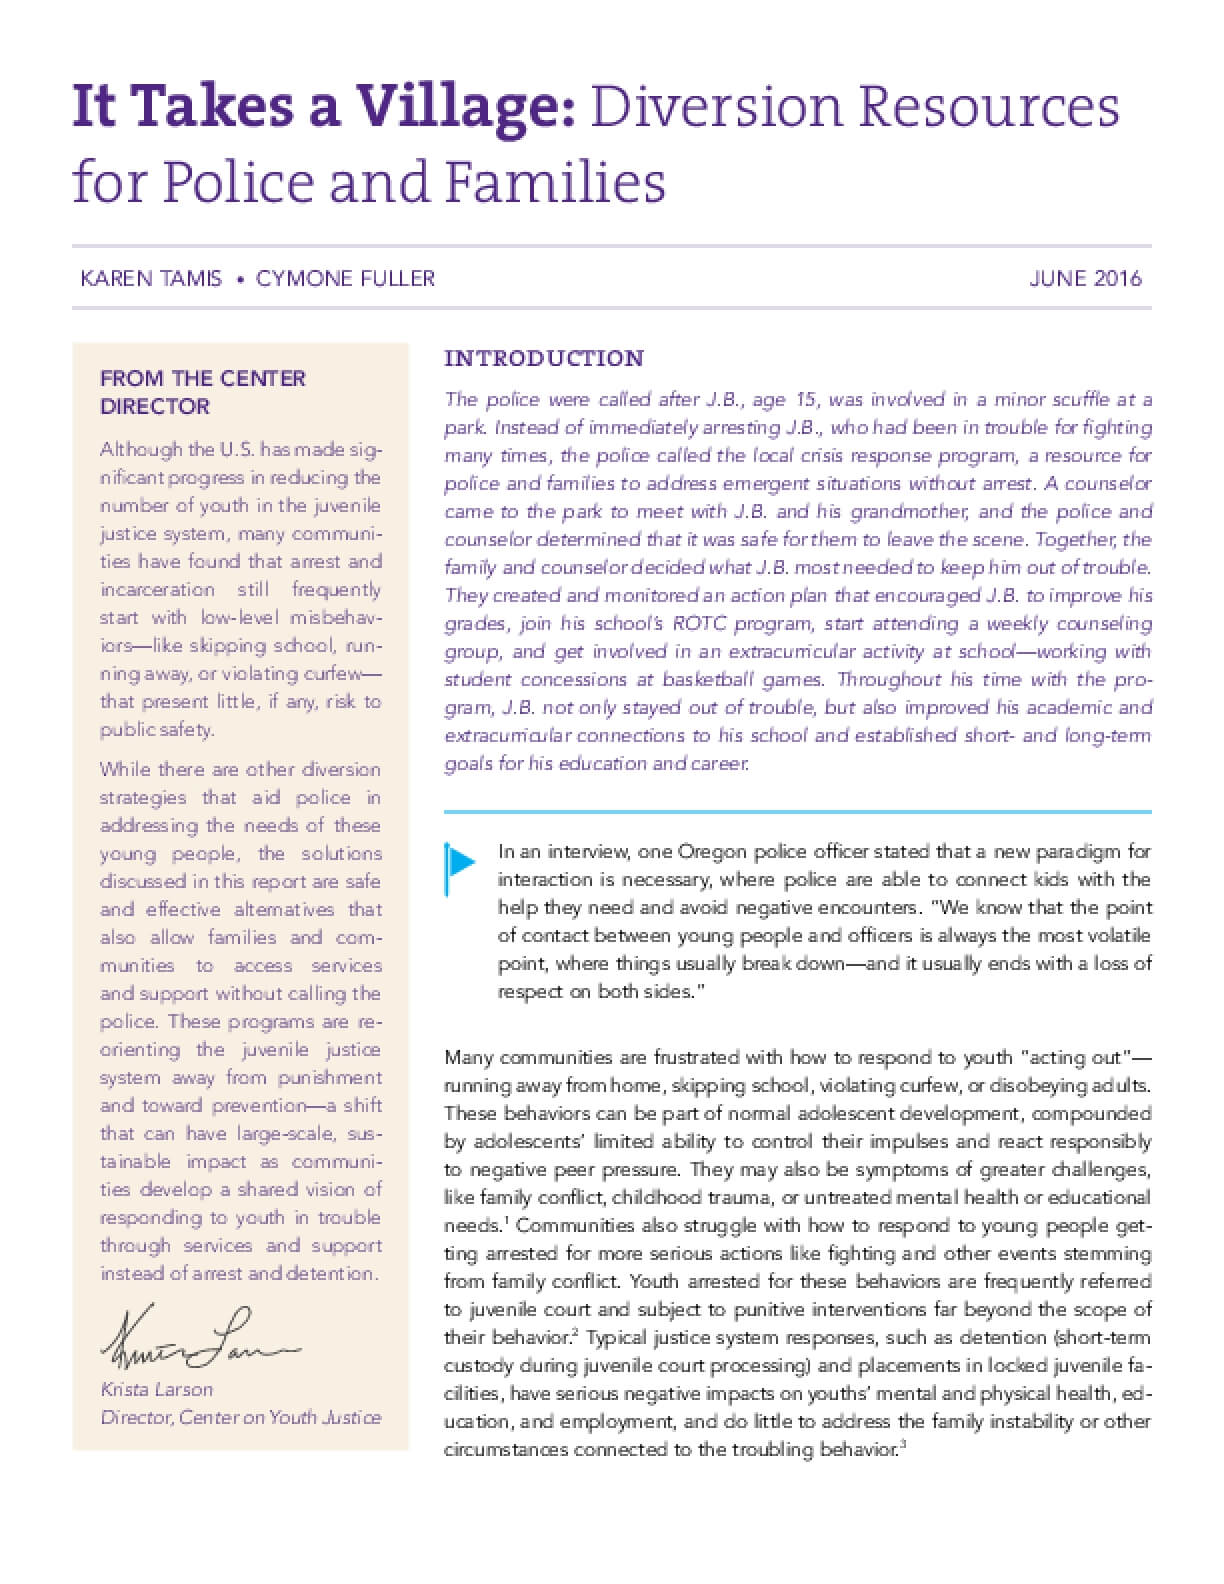 It Takes a Village: Diversion Resources for Police and Families